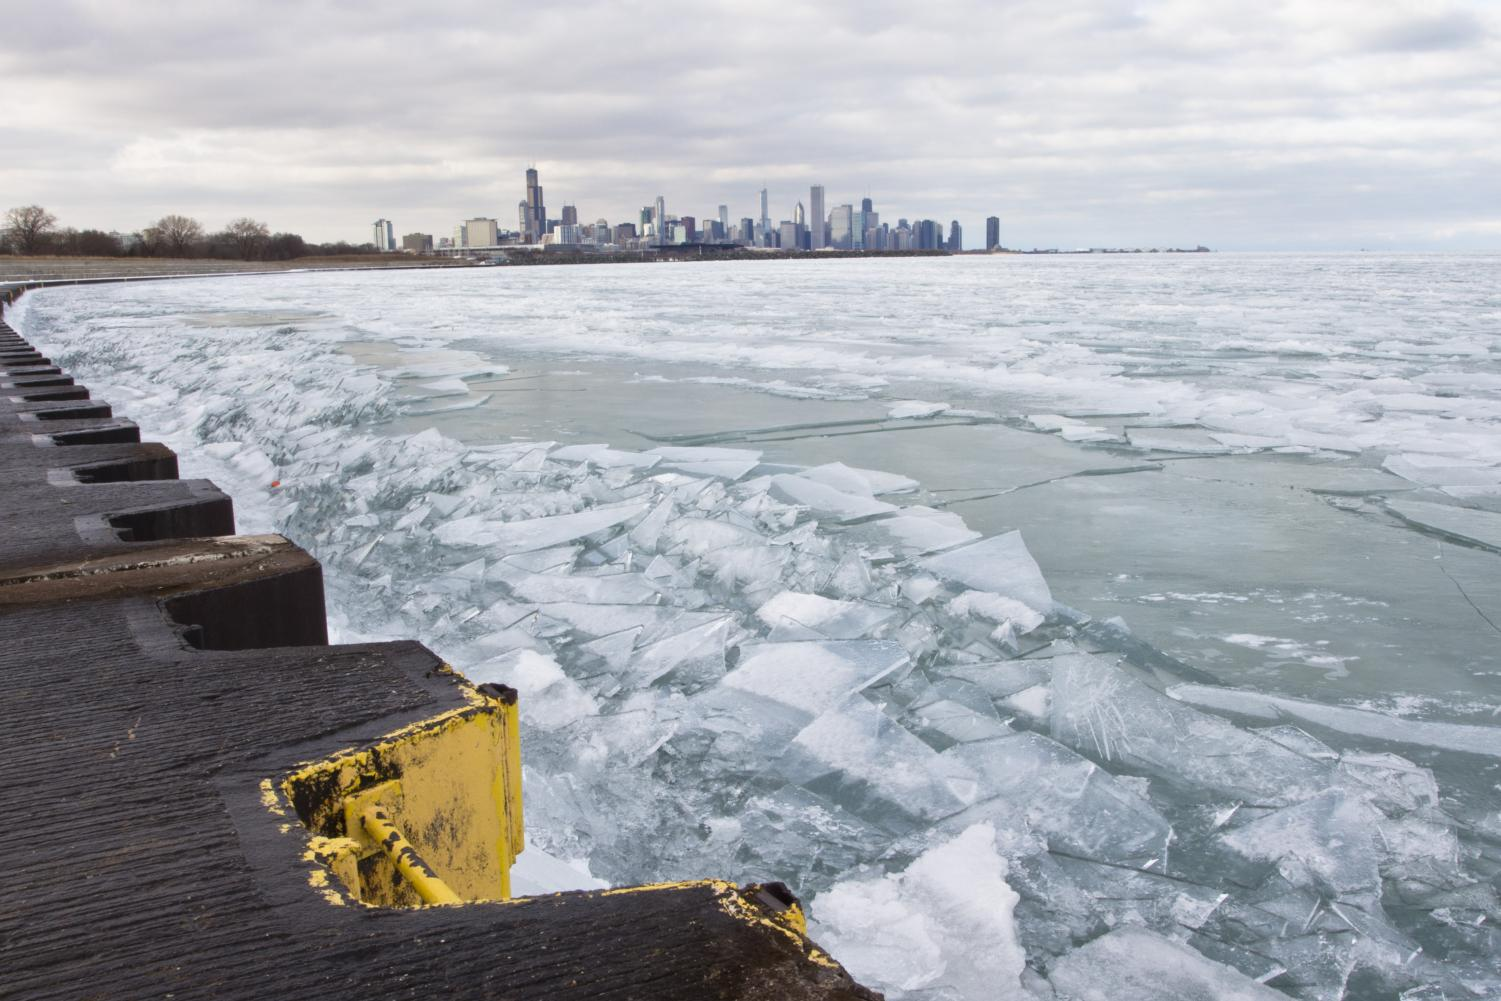 Lake Michigan frozen over in Chicago on Jan. 23, 2016. Three Illinois representatives have filed bill HR0101 to make Chicago its own state.